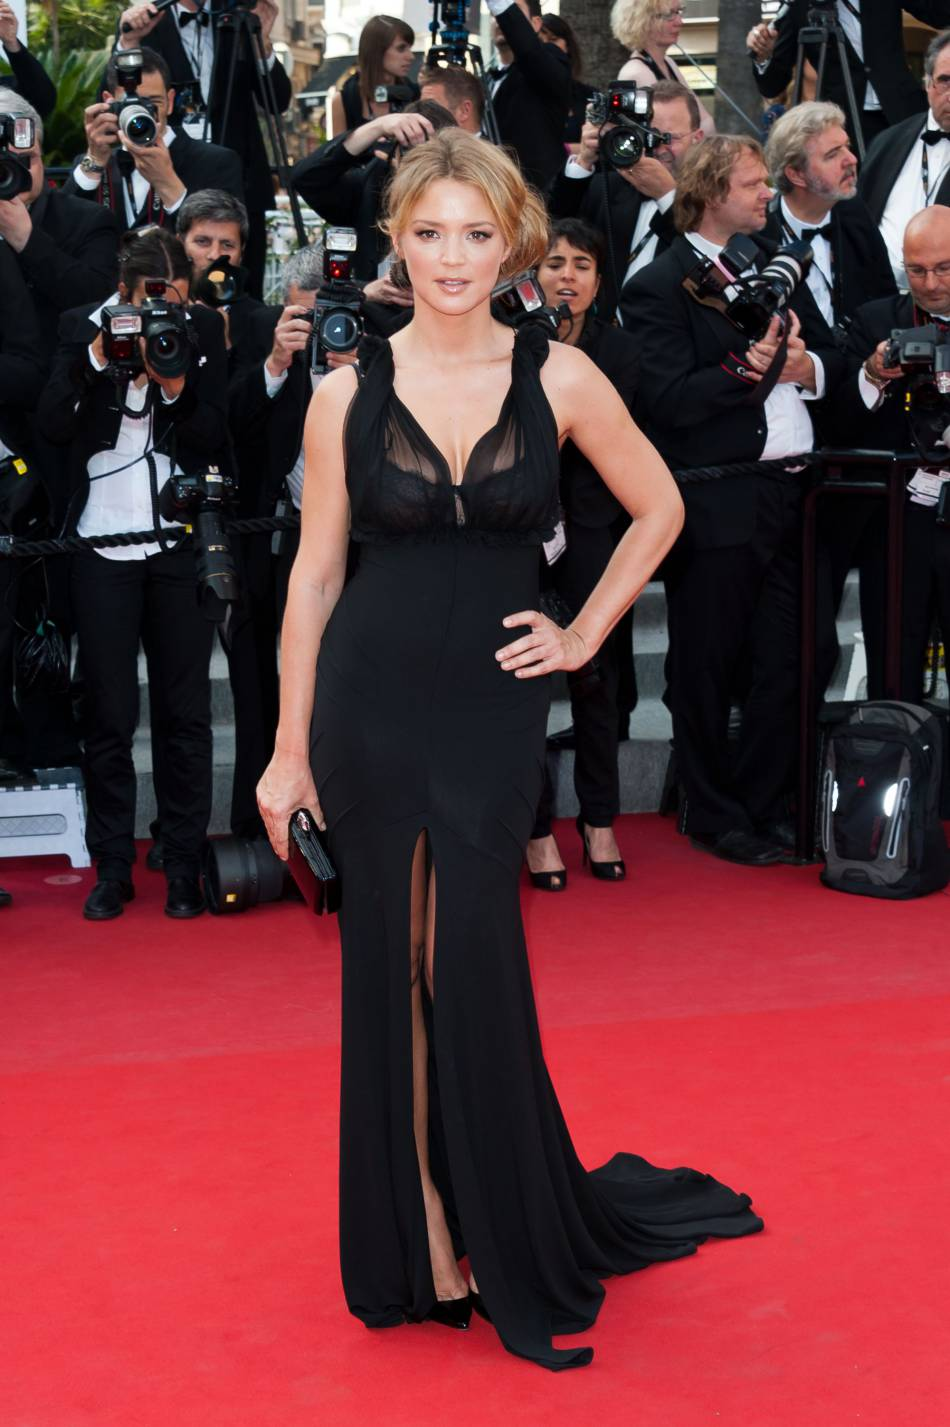 virginie efira affolait le tapis rouge